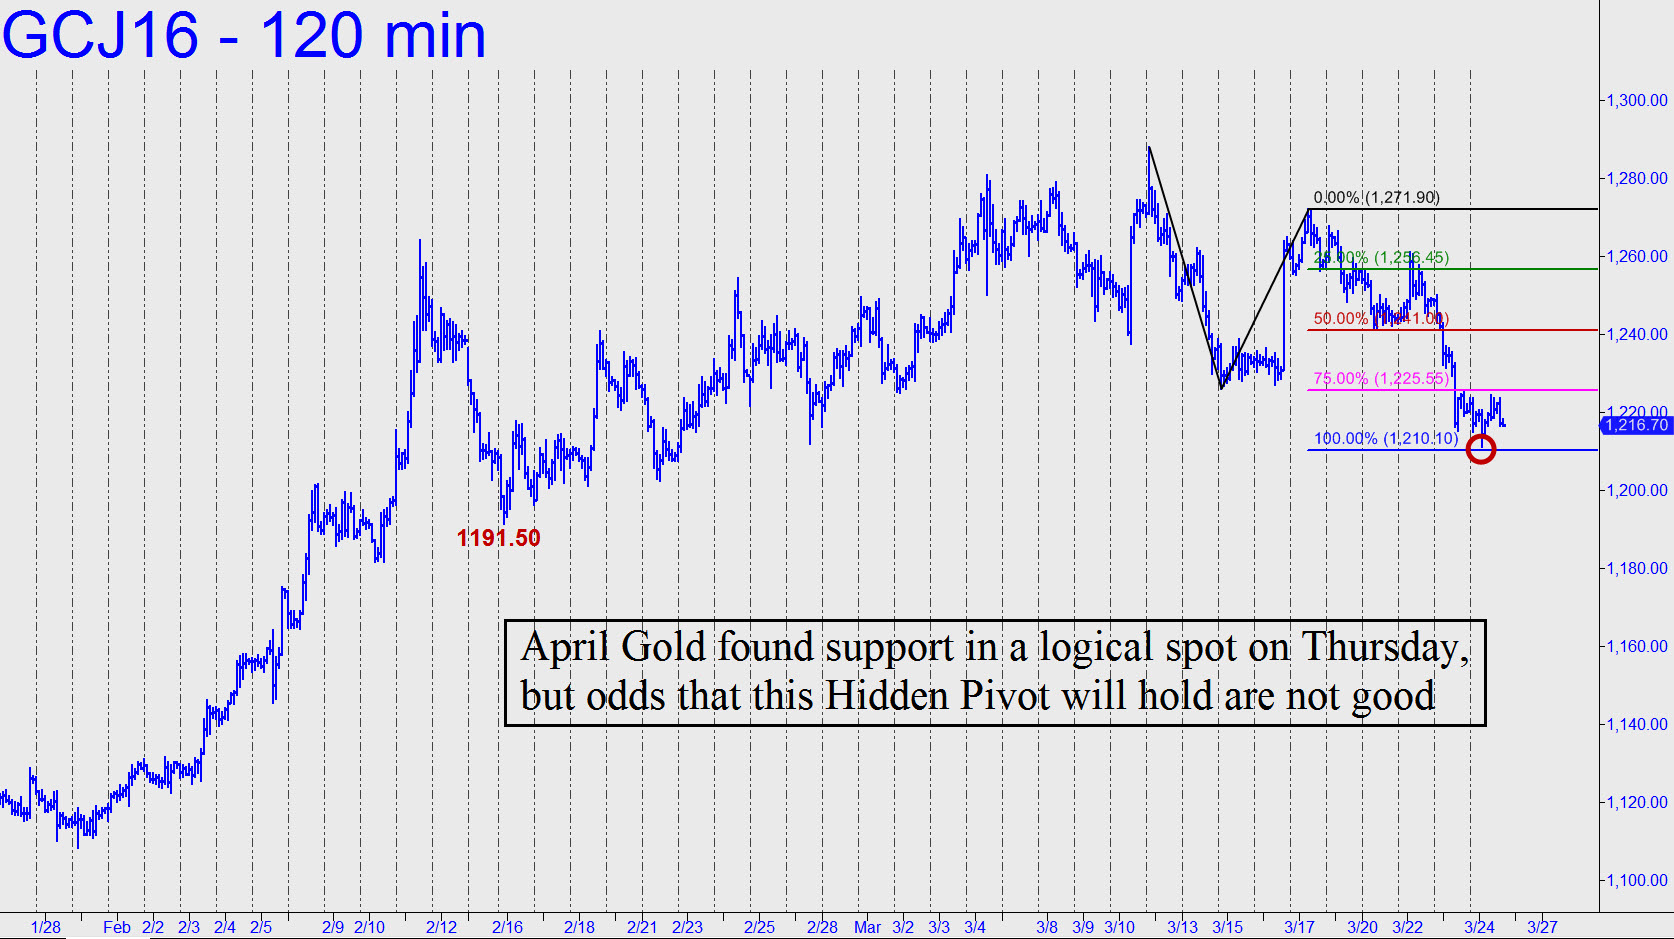 http://www.rickackerman.com/wp-content/uploads/2016/03/April-gold-found-support.jpg